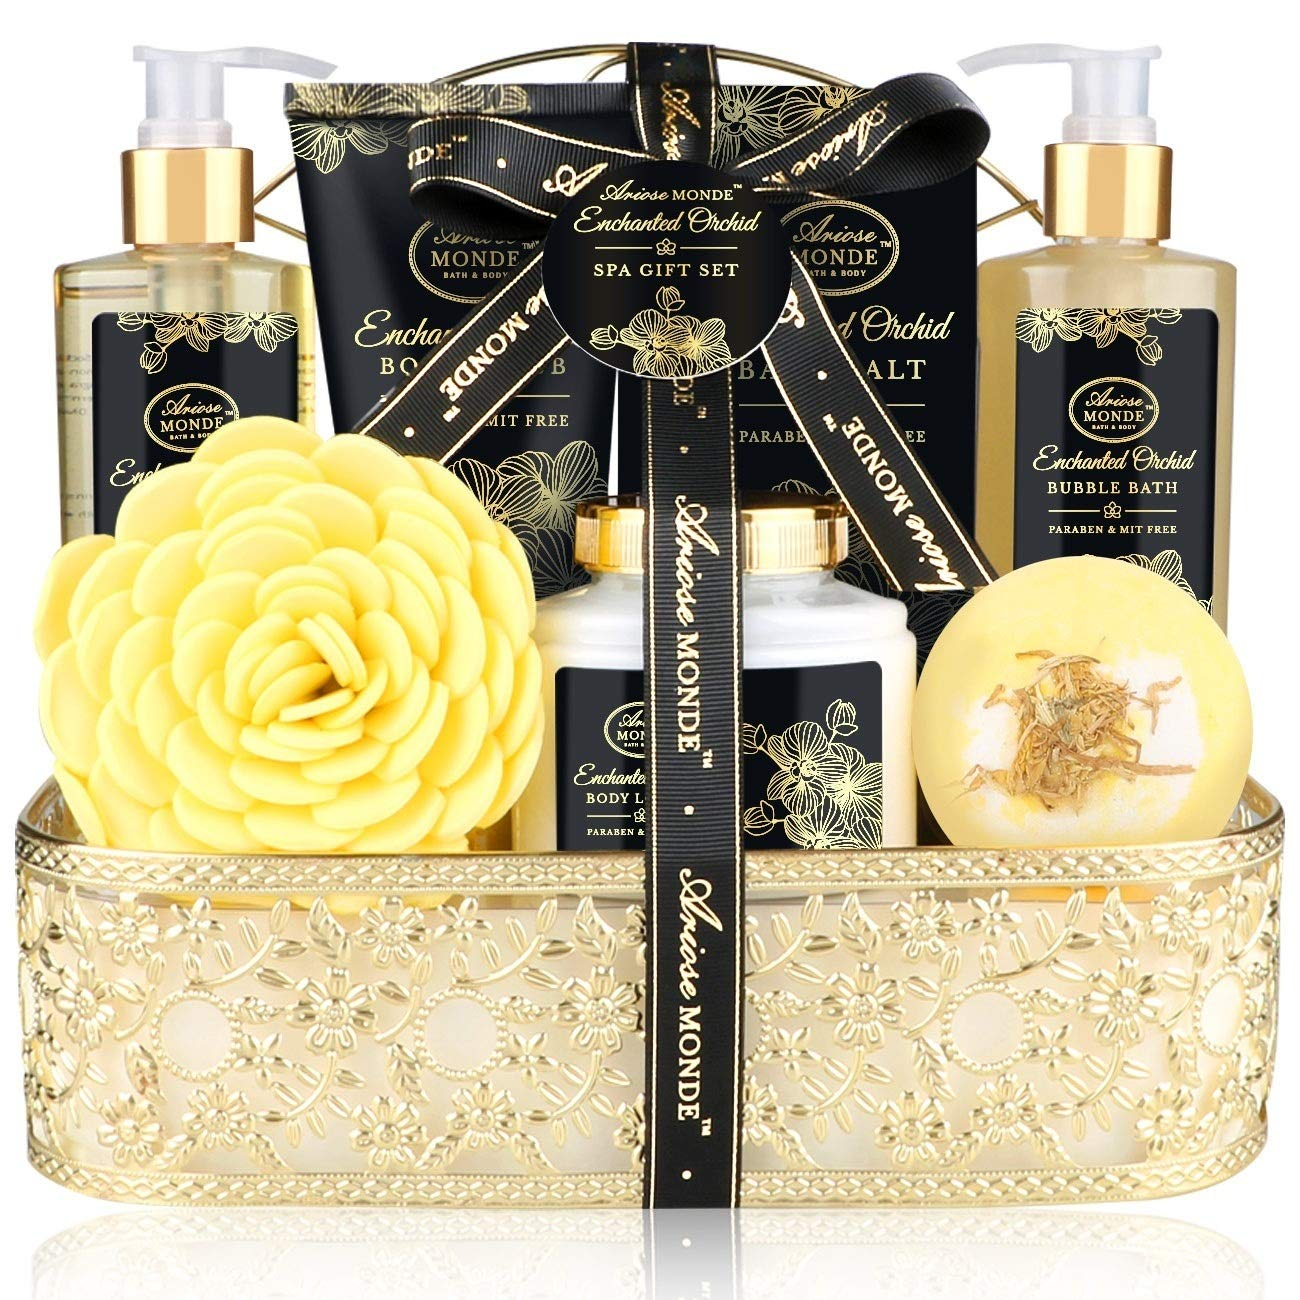 Gift Bath & Shower Spa Basket Gift Set, Enchanted Orchid Scent, with Shower Gel, Bubble Bath,Body Lotion,Body Scrub,Bath Bombs,Bath Salt and More, Bath and Body Gift Box for Women, 8Pcs